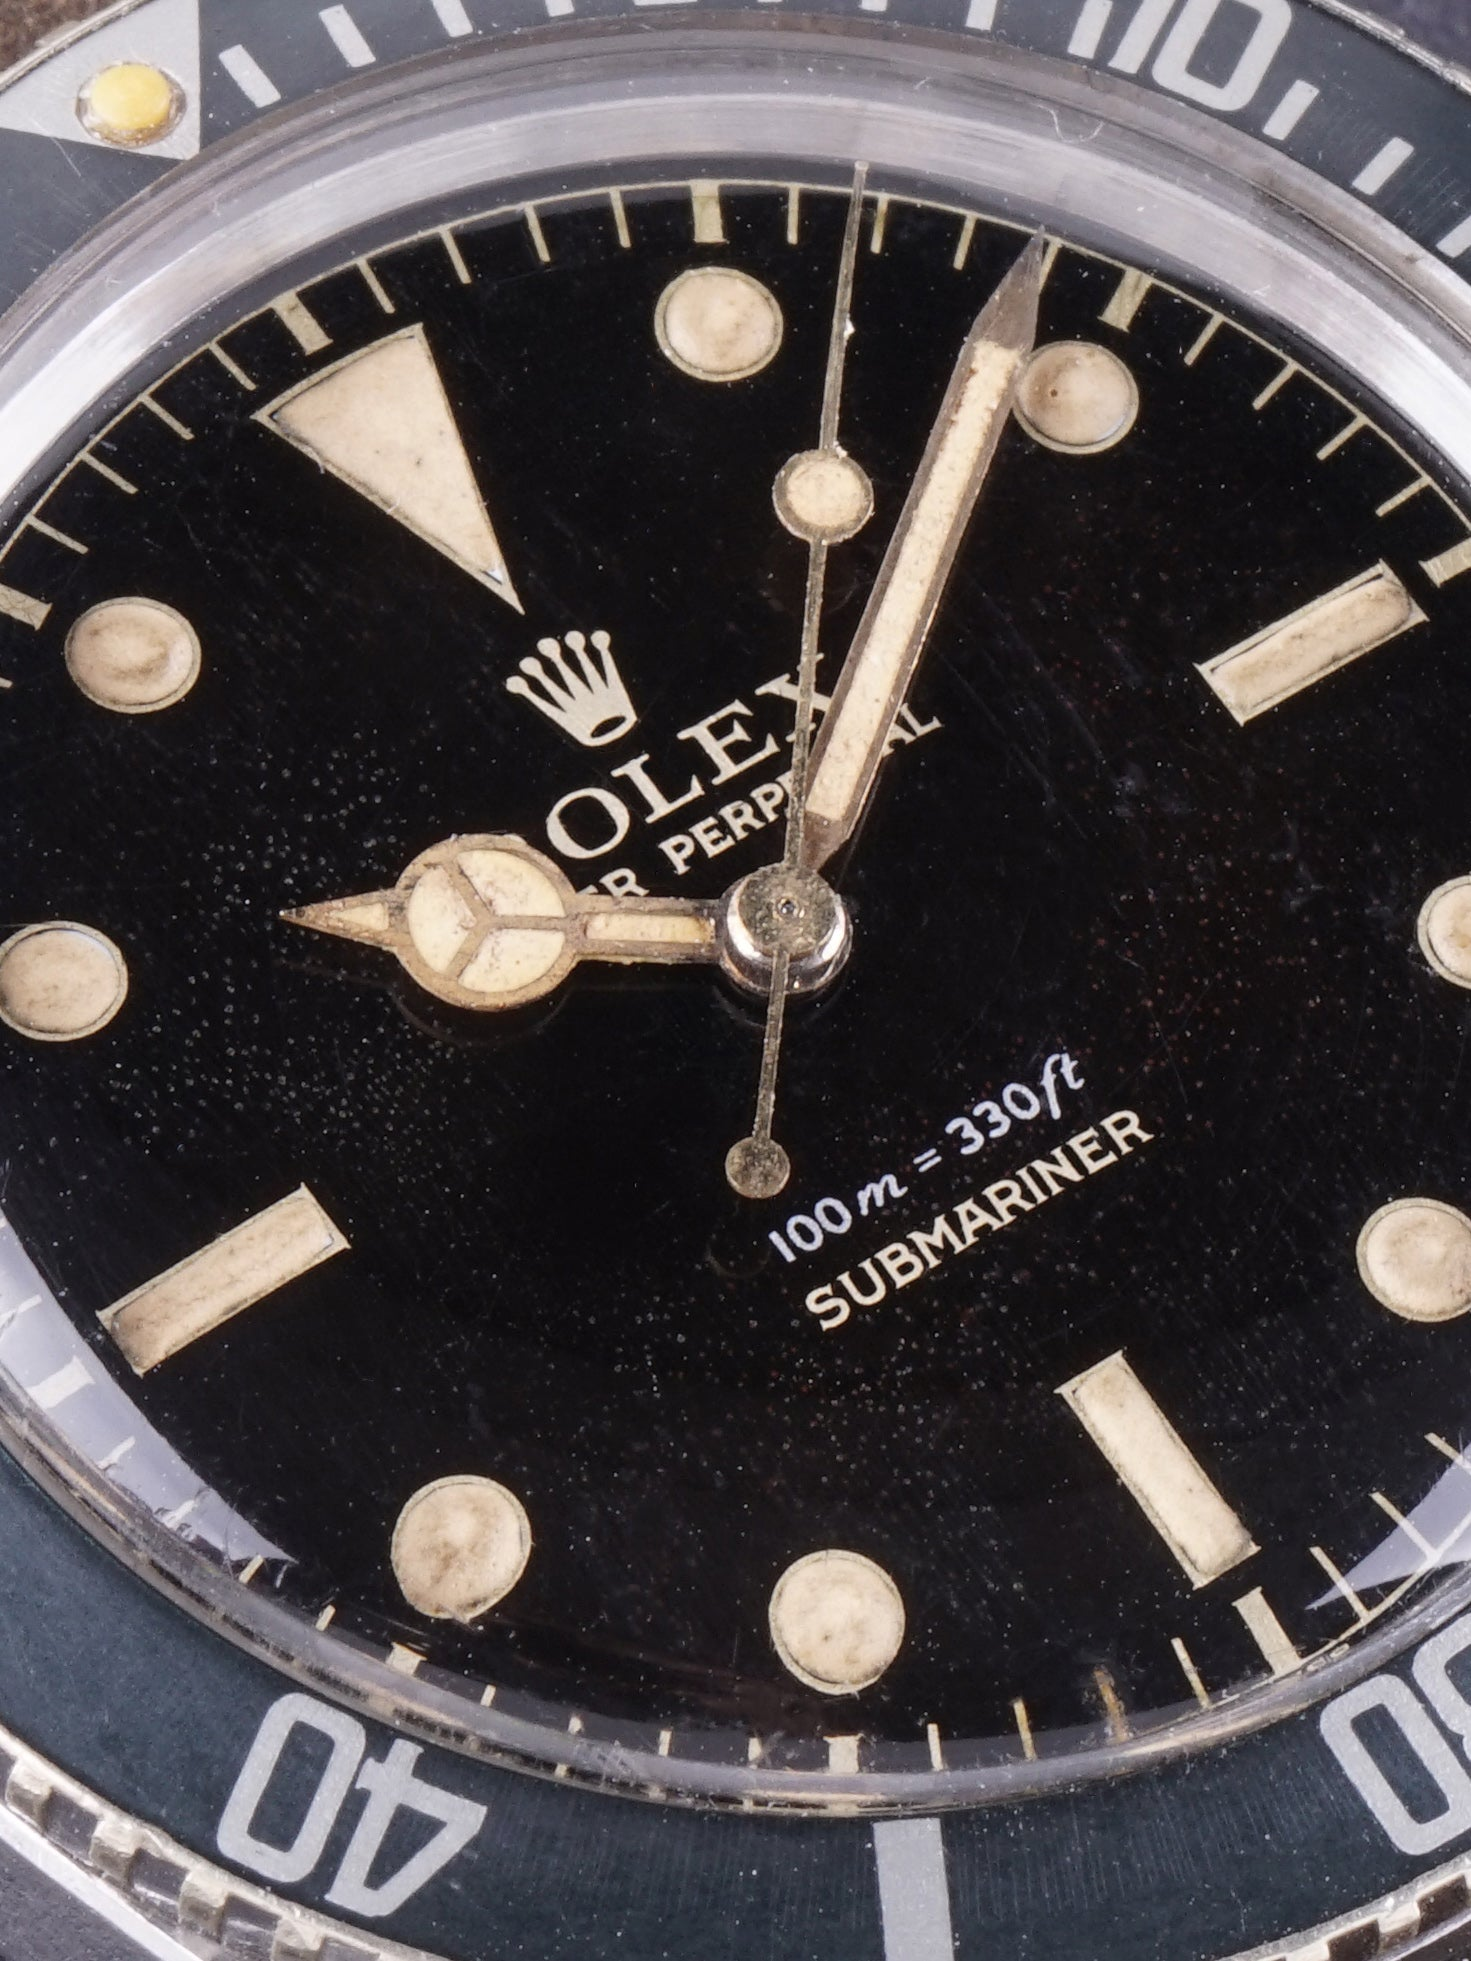 "1959 Rolex Submariner (Ref. 5508) ""Small Crown"""